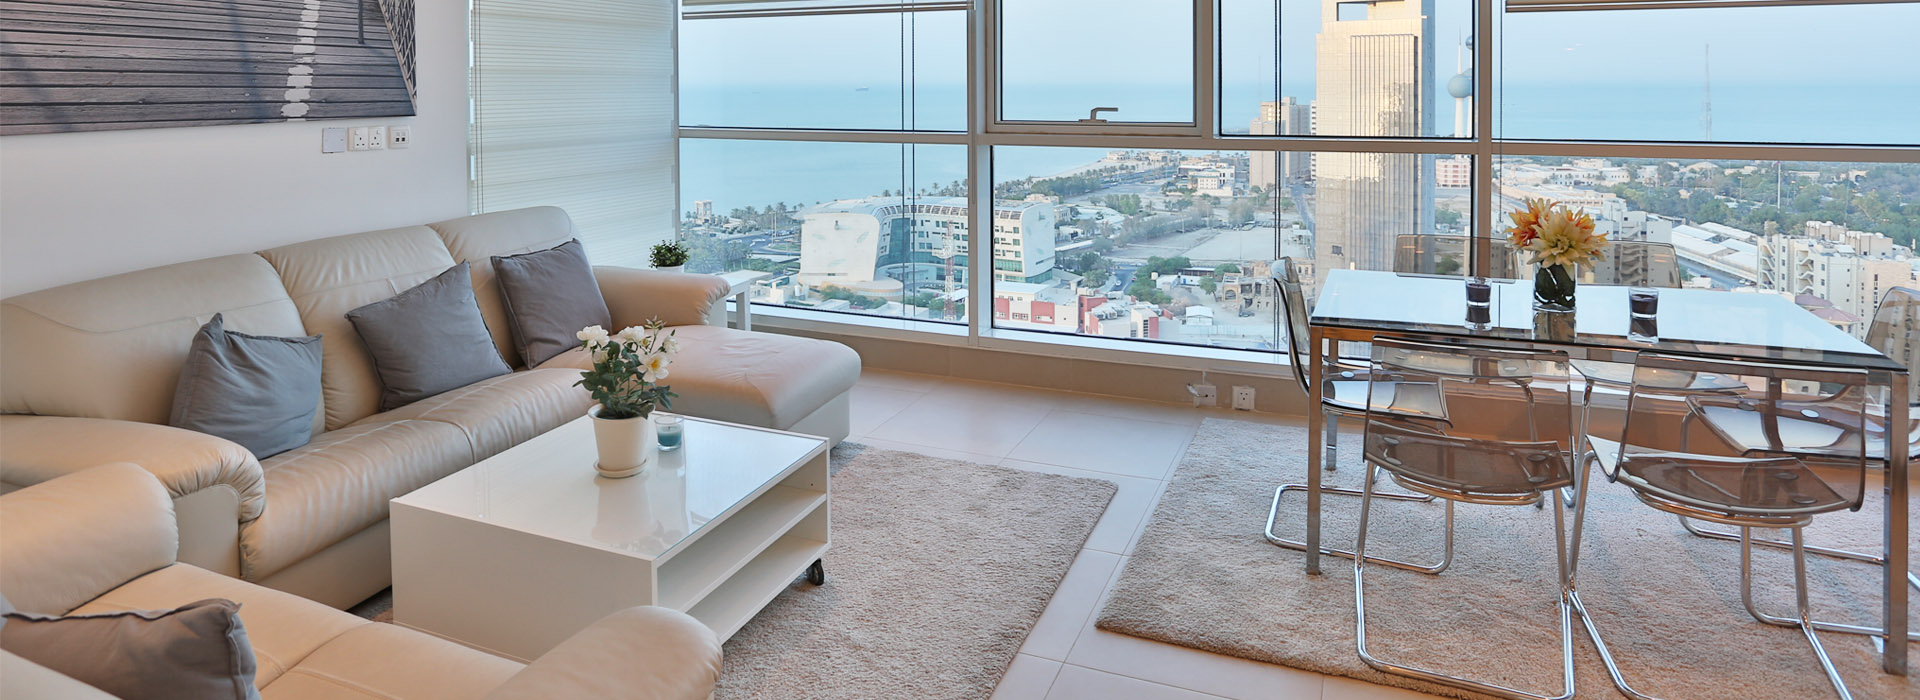 Luxurious Furnish Apartment-Deera Tower in Sharq